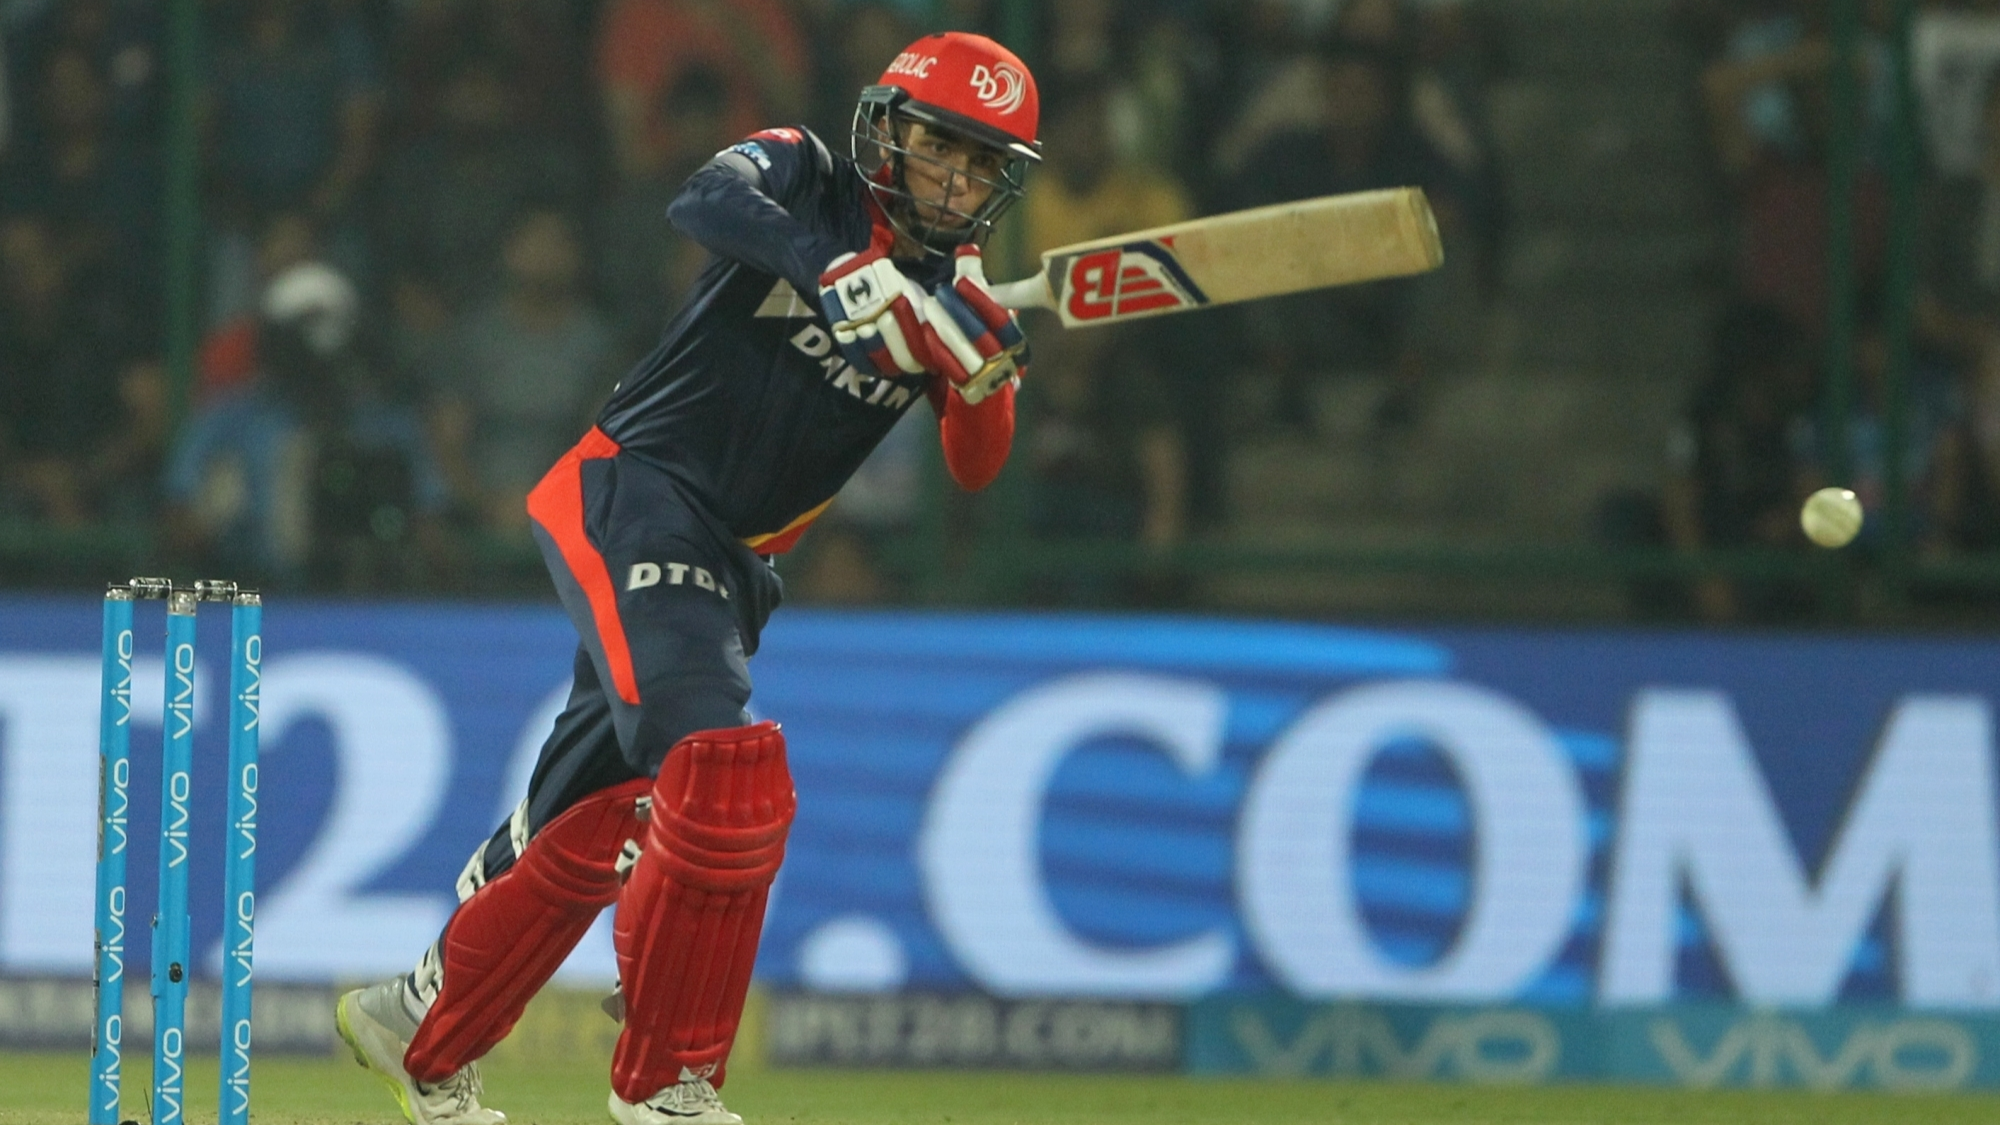 IPL 2018: Twitter reacts as Rishabh Pant and Abhishek Sharma's stupendous batting take DD to 181 against RCB